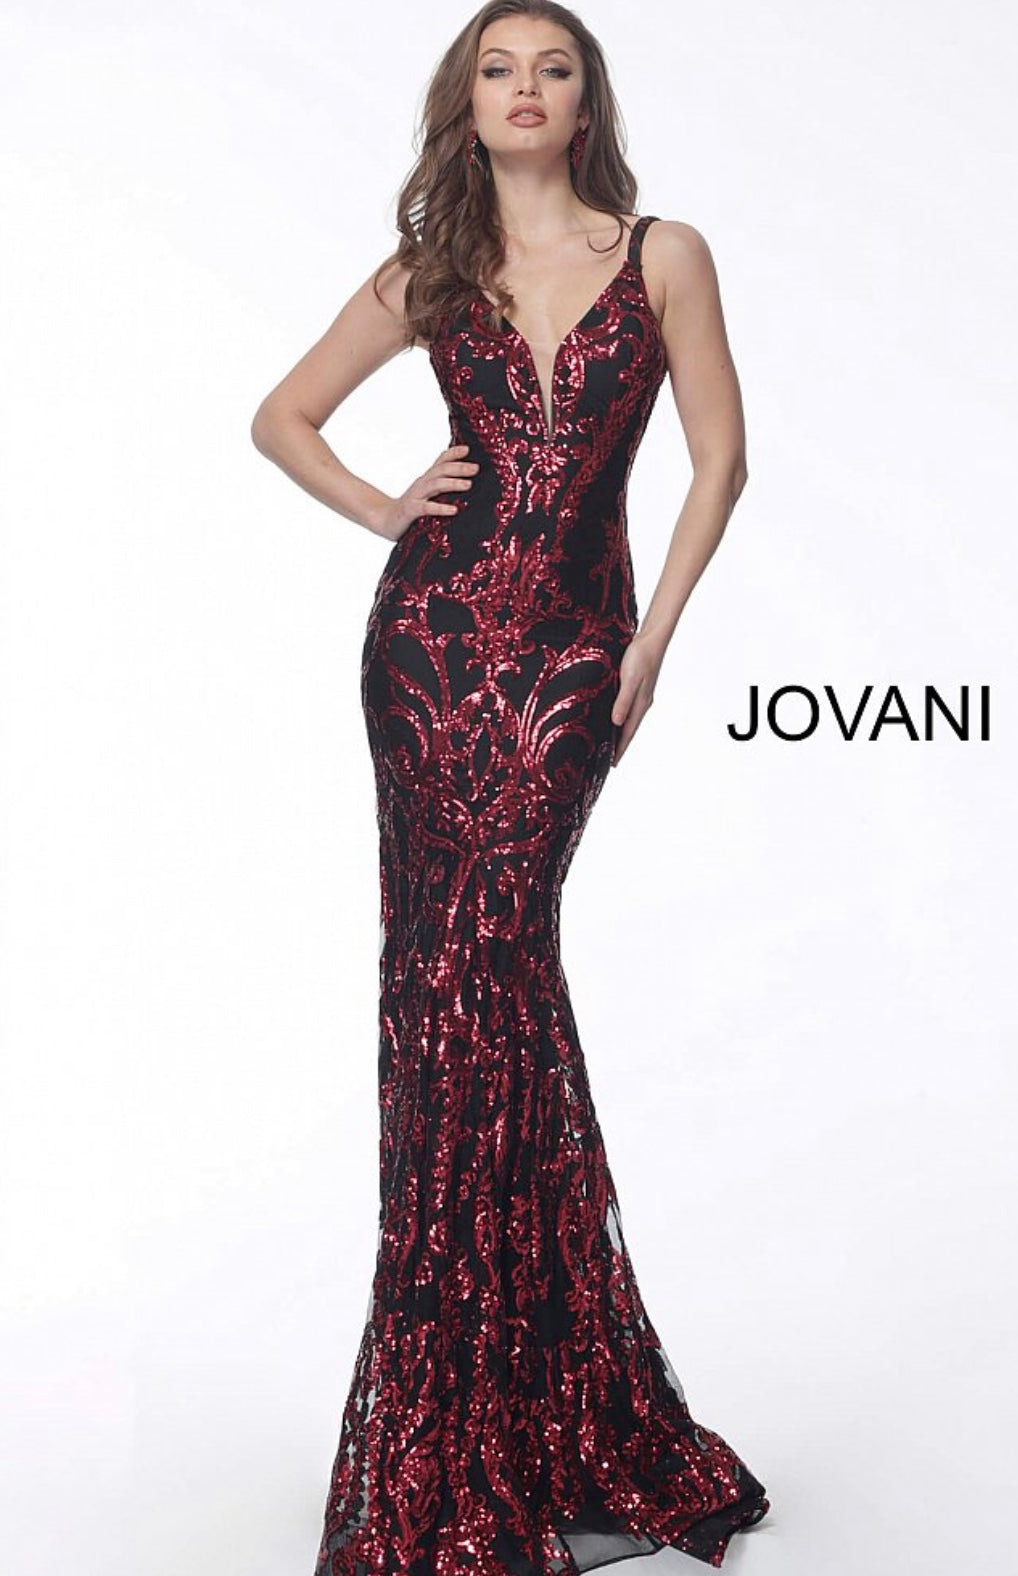 JOVANI 63350 Plunging Neck Fitted Embellished Evening Dress - CYC Boutique